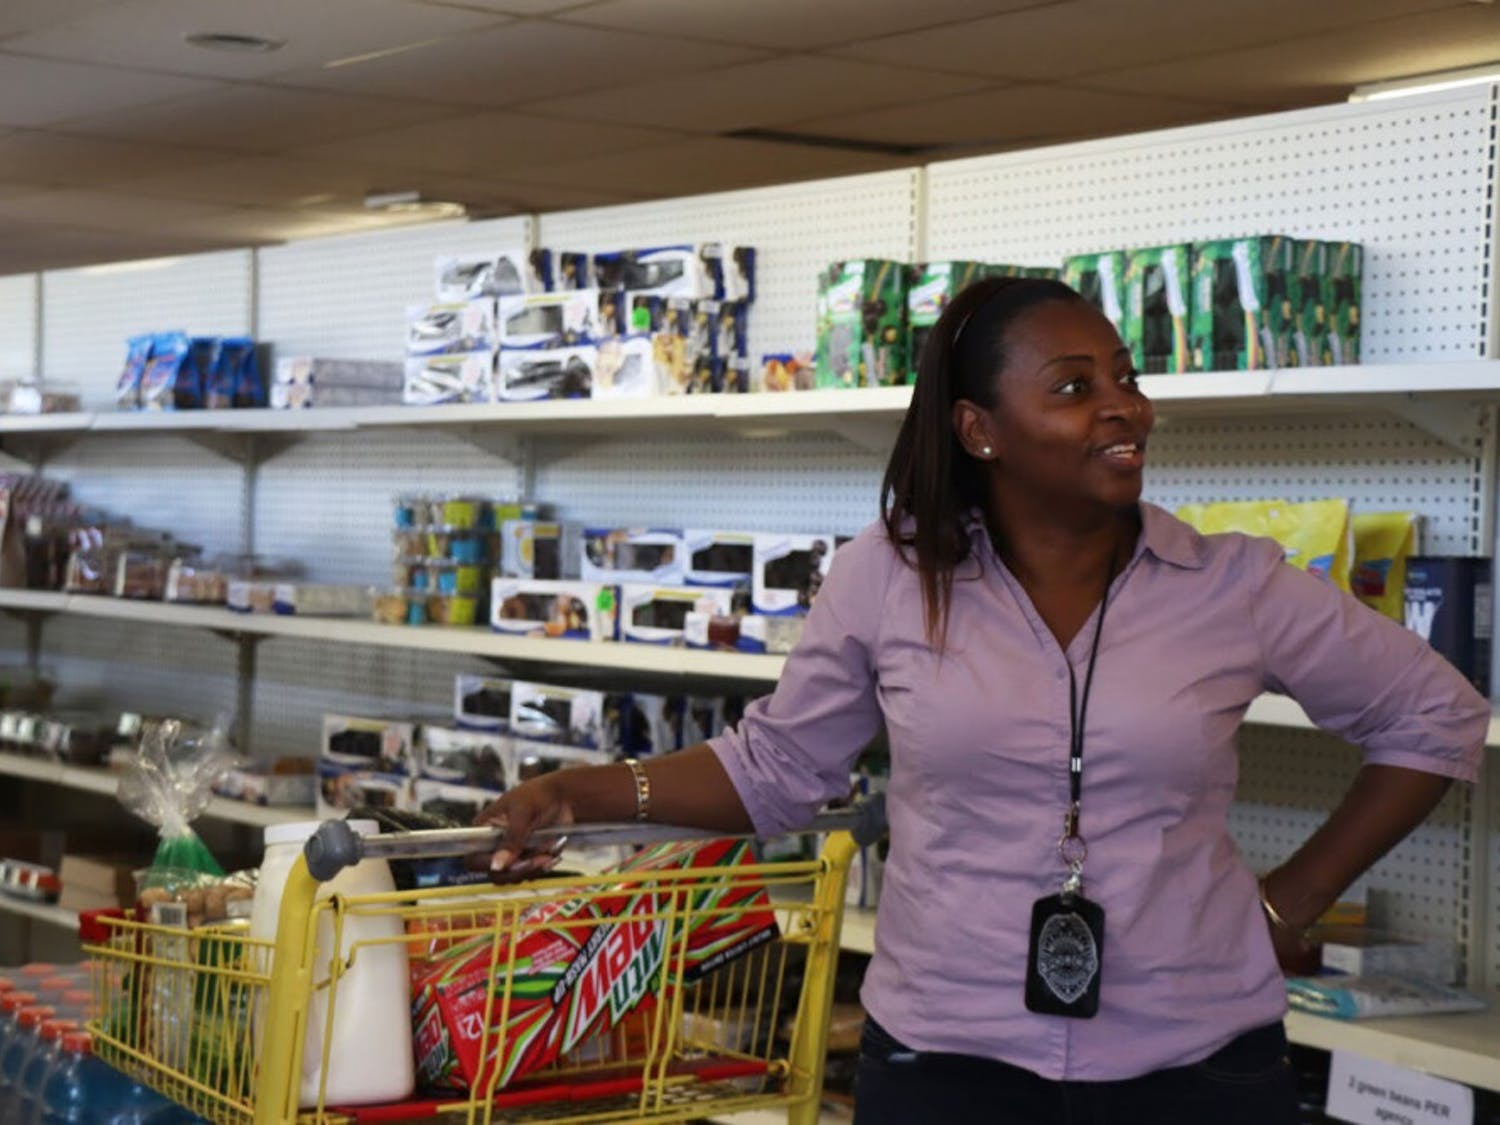 Pastor Crystal Griffin stops to talk to a friend while shopping for her ministry on Friday afternoon at the Bread of the Mighty Food Bank. The food bank distributes to five surrounding counties, including Alachua.